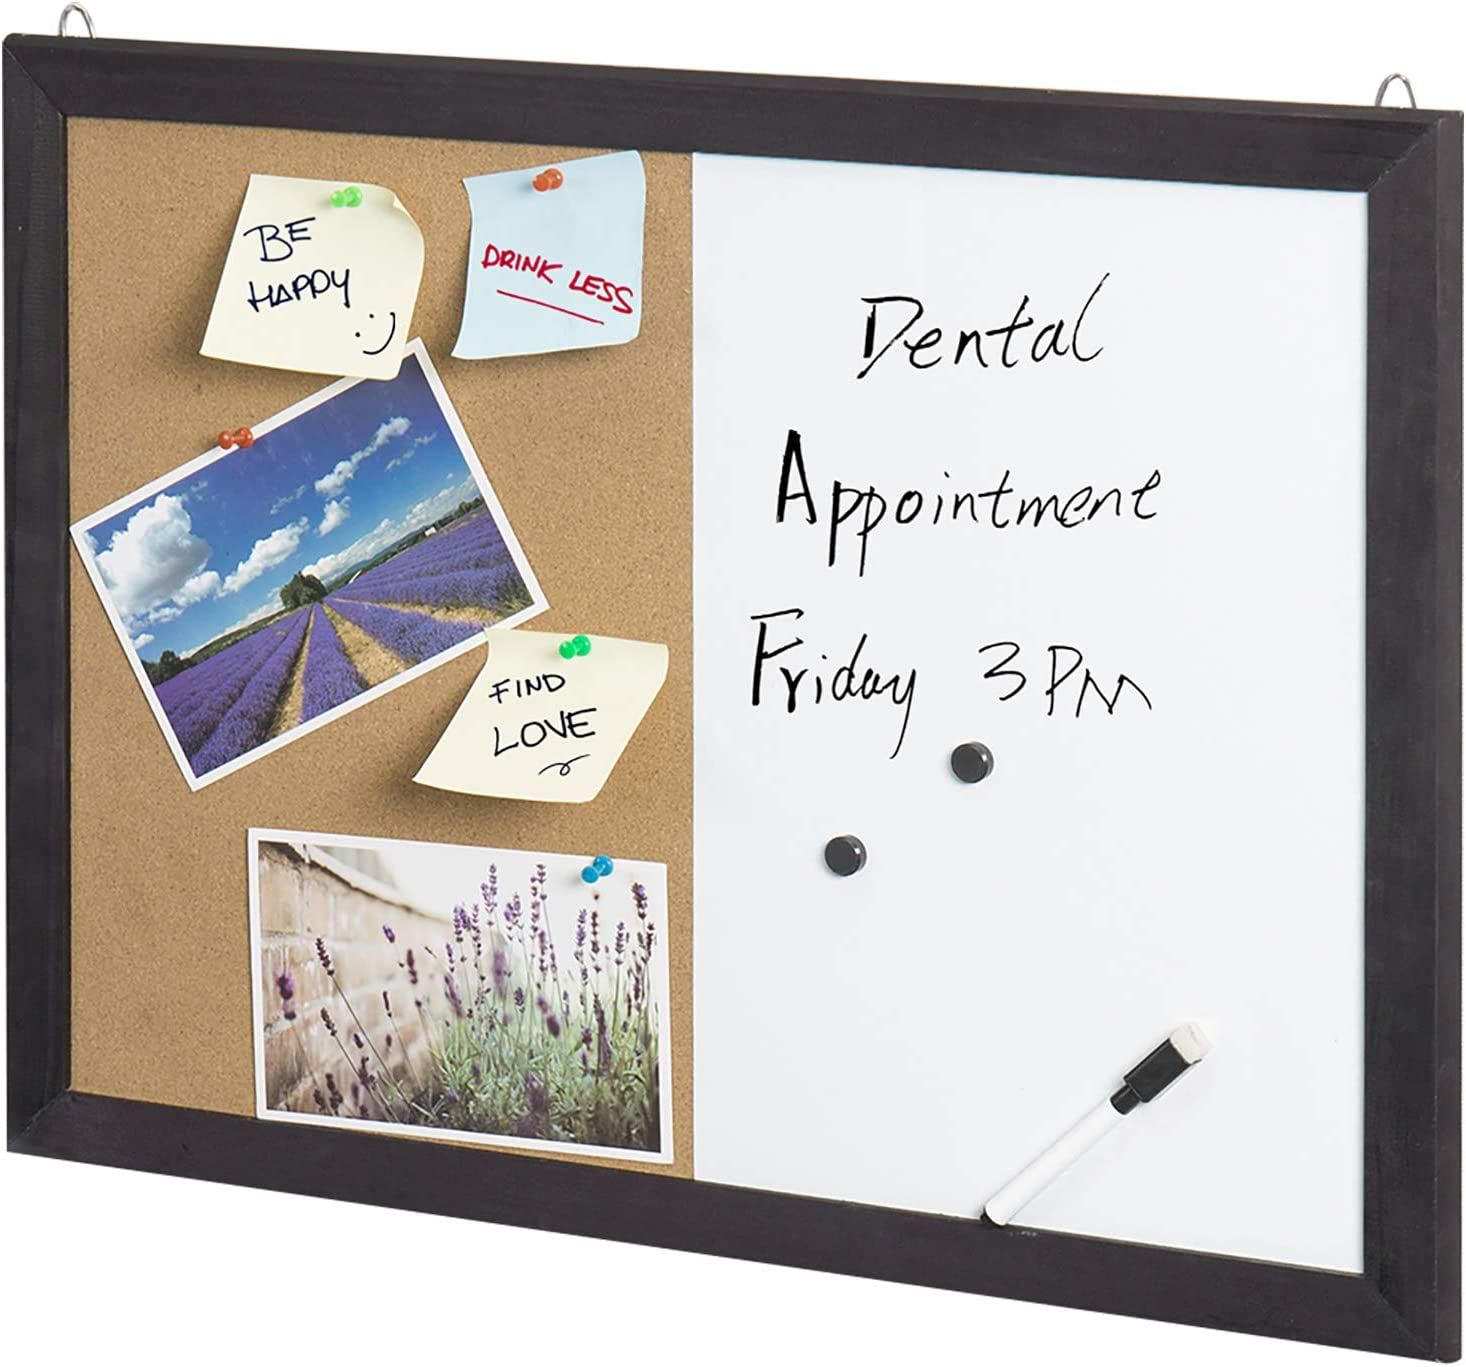 Amazon Com 2 In 1 Black Wood Framed Wall Mounted Combination Bulletin Cork Board Magnetic Whiteboard Mygift Office Products